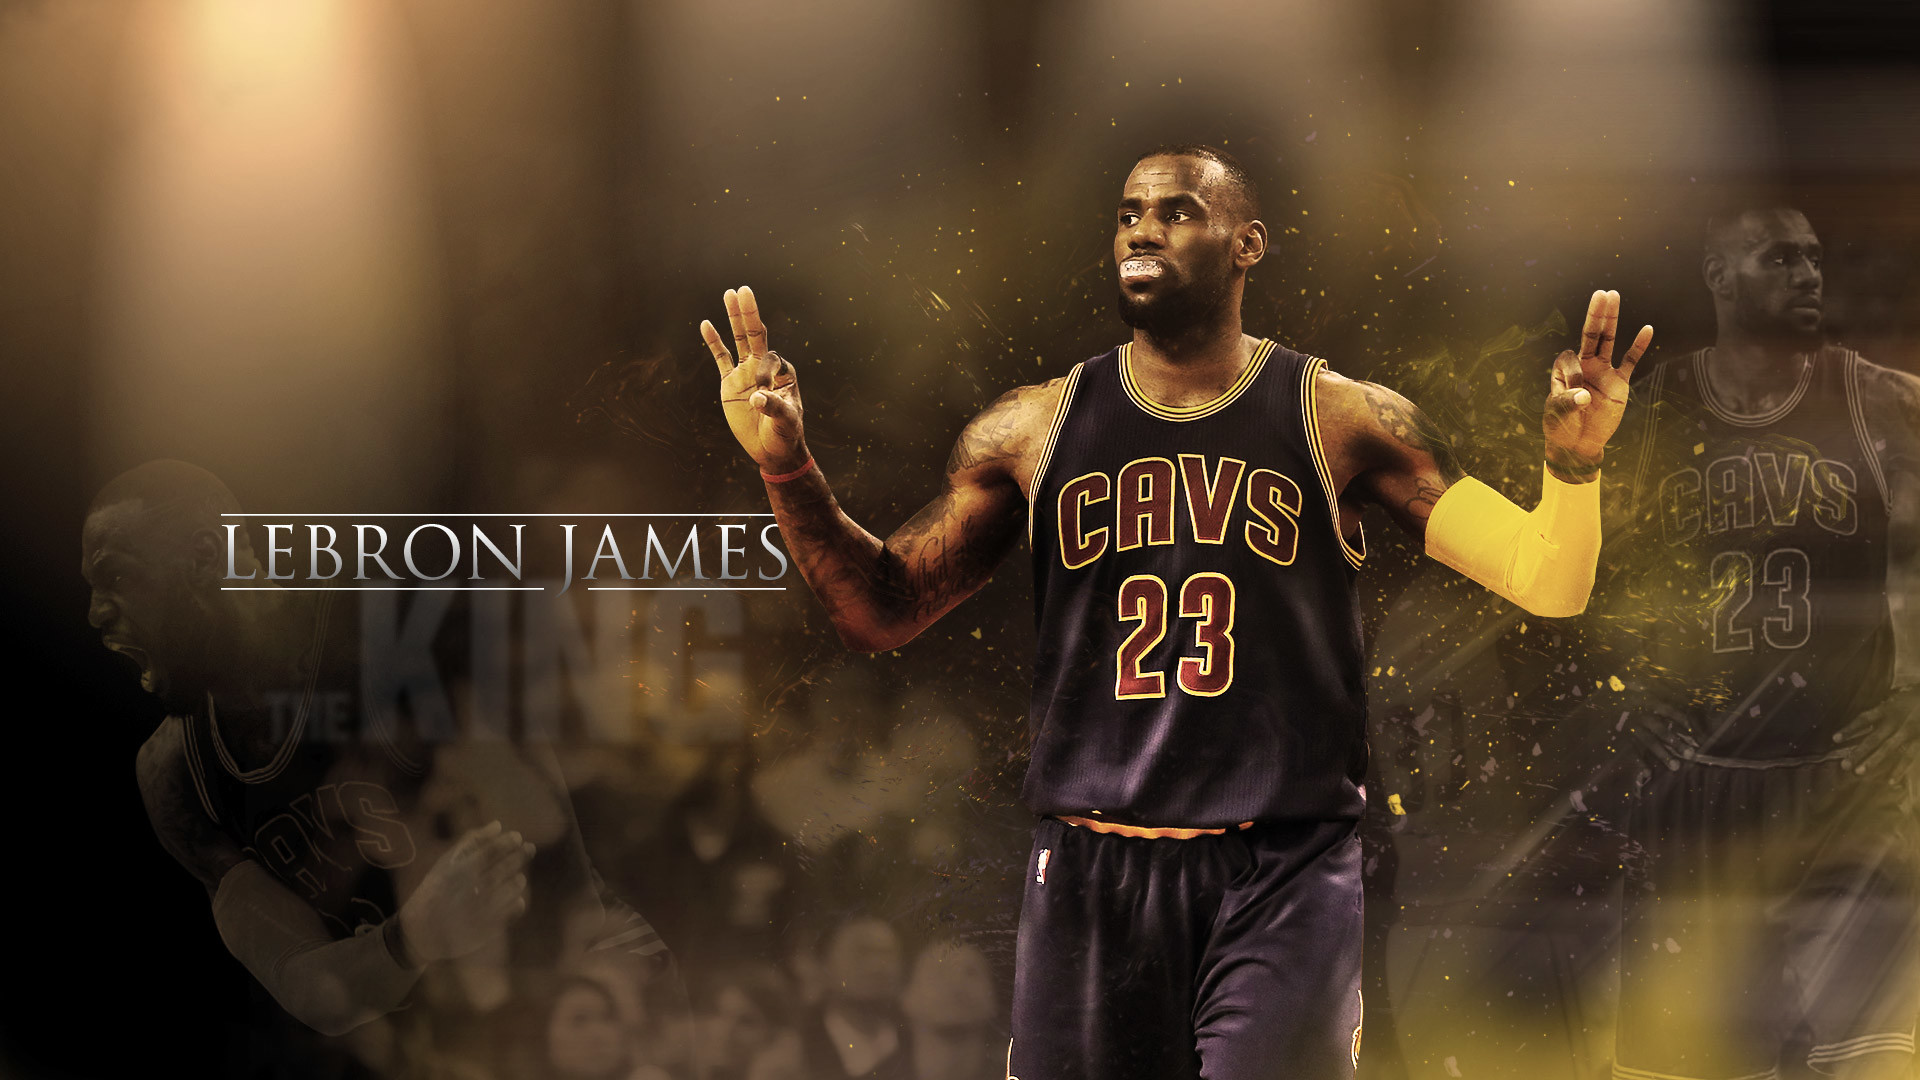 1920x1080  LeBron James Cavaliers 2016  Wallpaper · Download · HD  ...